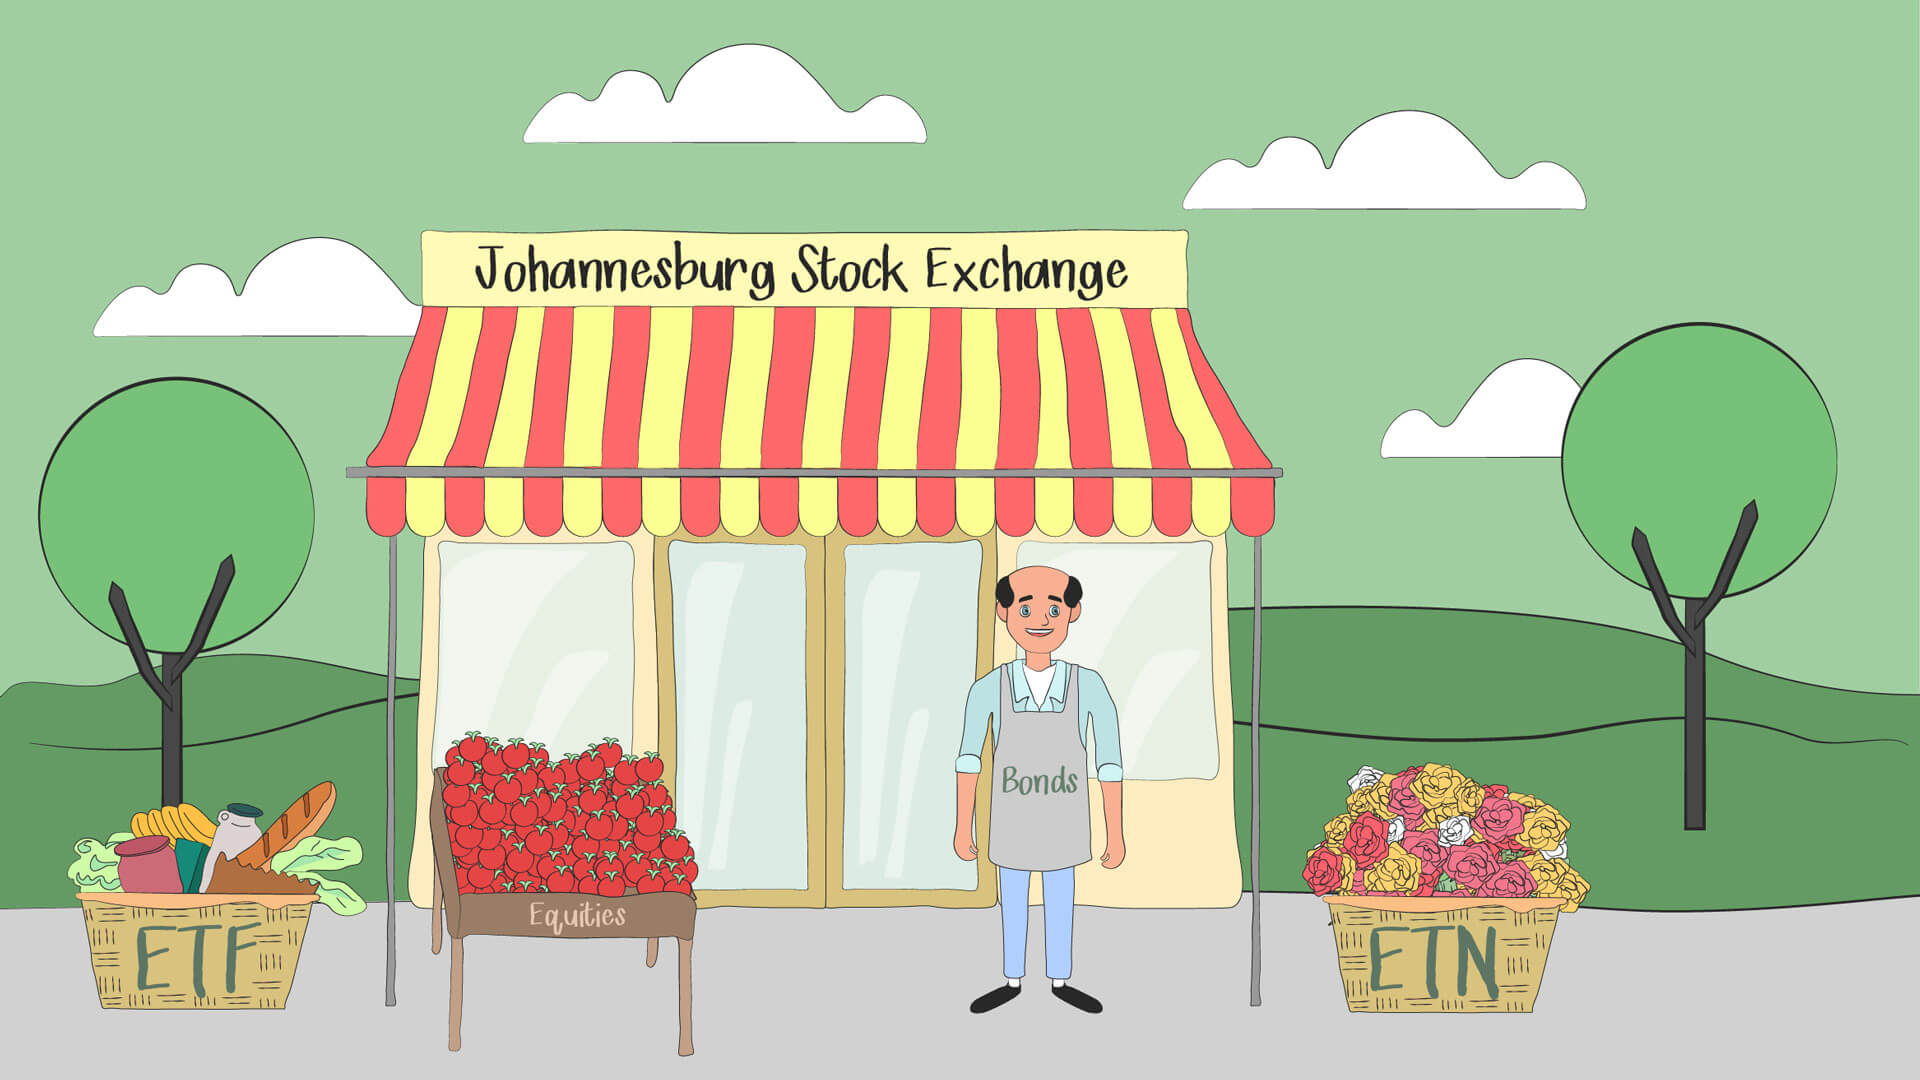 Johannesburg Stock Exchange depicted as small grocery store to help beginner investors understand concepts like equities